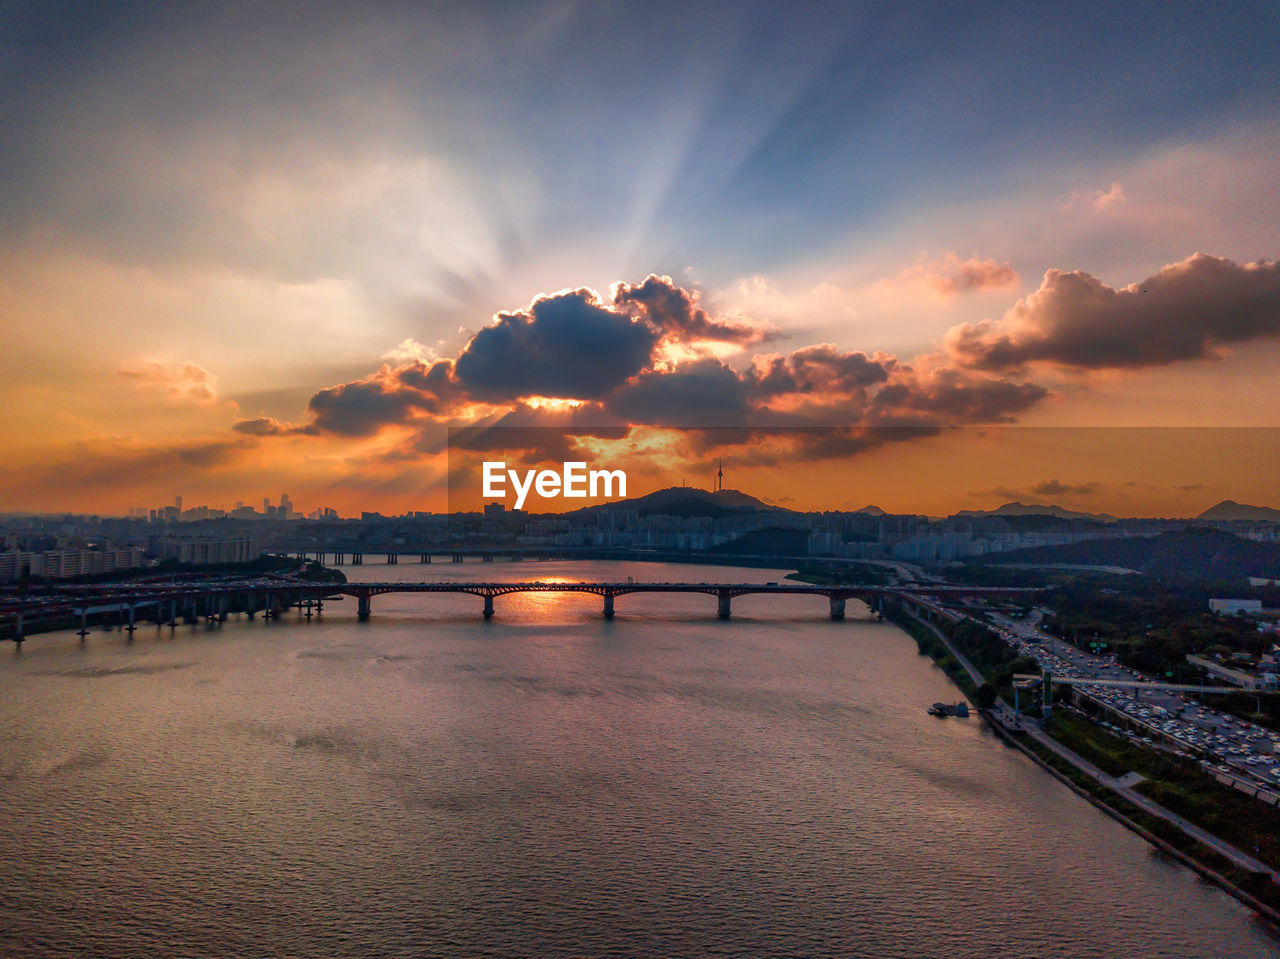 BRIDGE OVER RIVER AGAINST SKY IN CITY DURING SUNSET